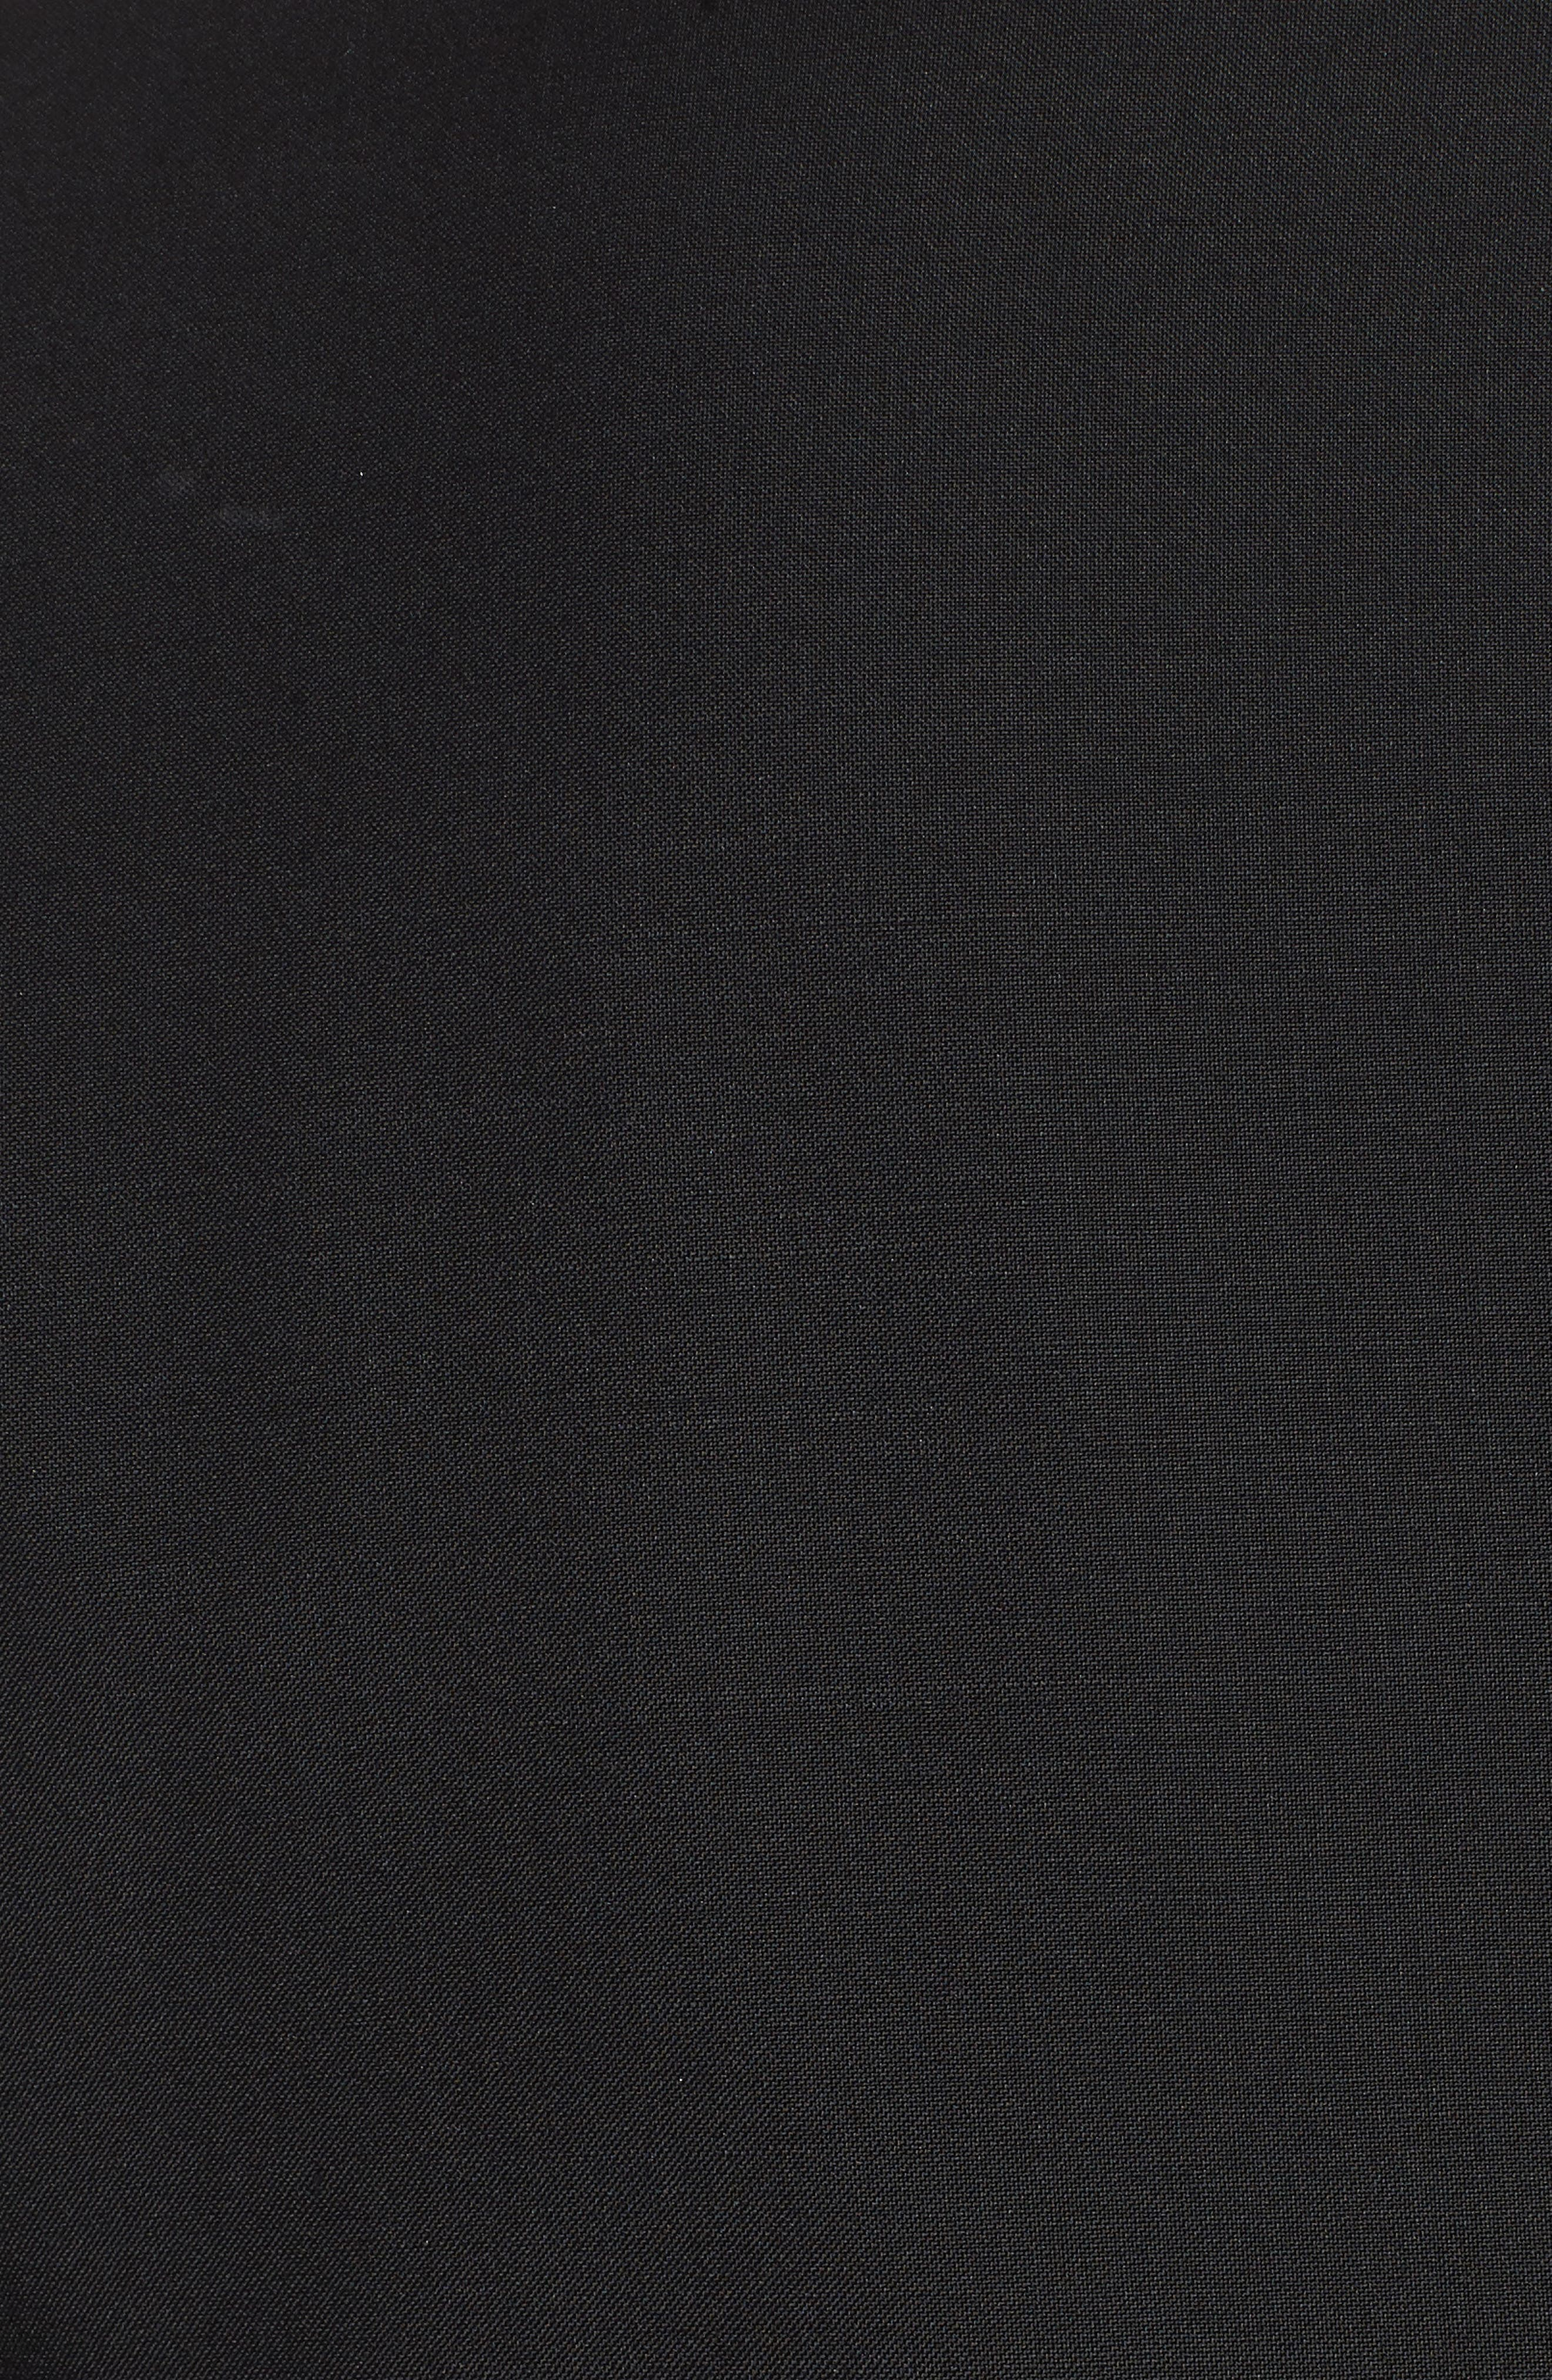 Classic Fit Wool & Mohair Tuxedo,                             Alternate thumbnail 7, color,                             001